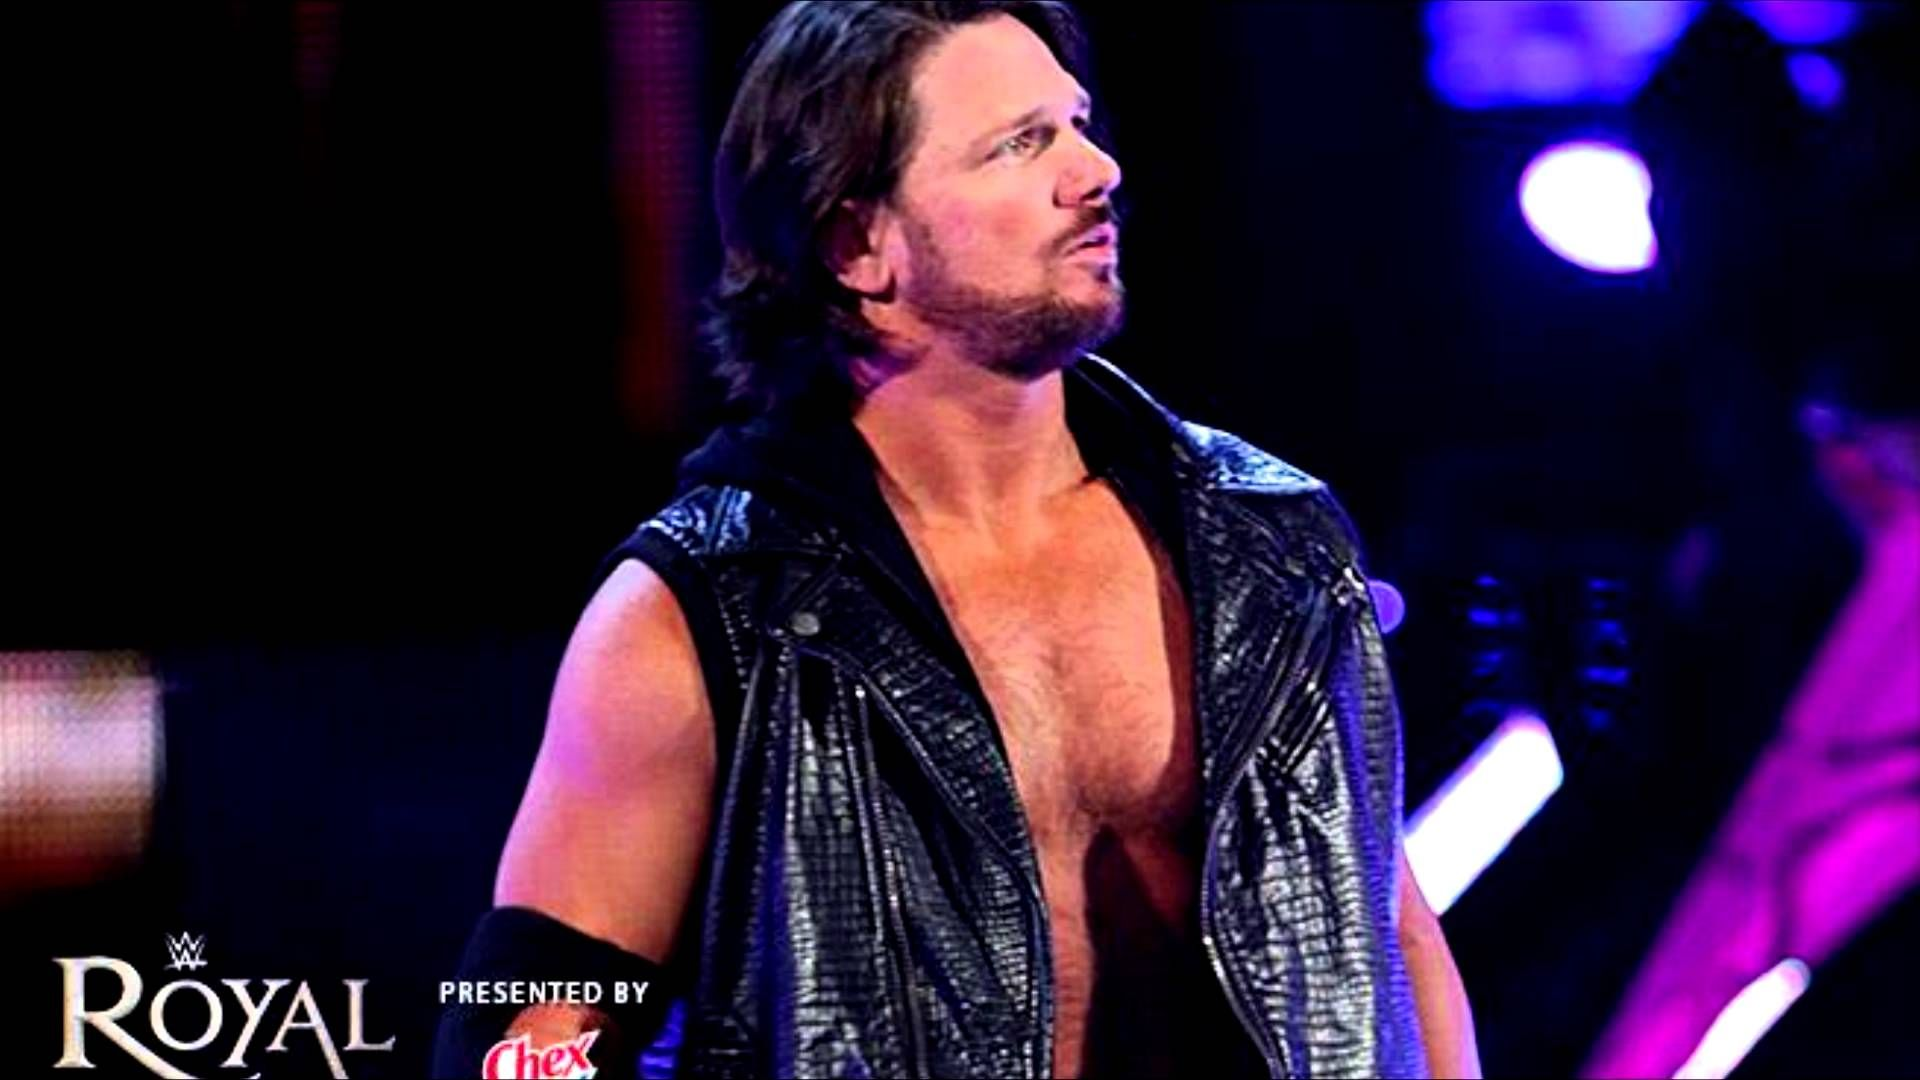 Aj Stials Aj Styles Wallpapers Hd Pictures Live Hd Wallpaper Hq Pictures Wwe Dunia